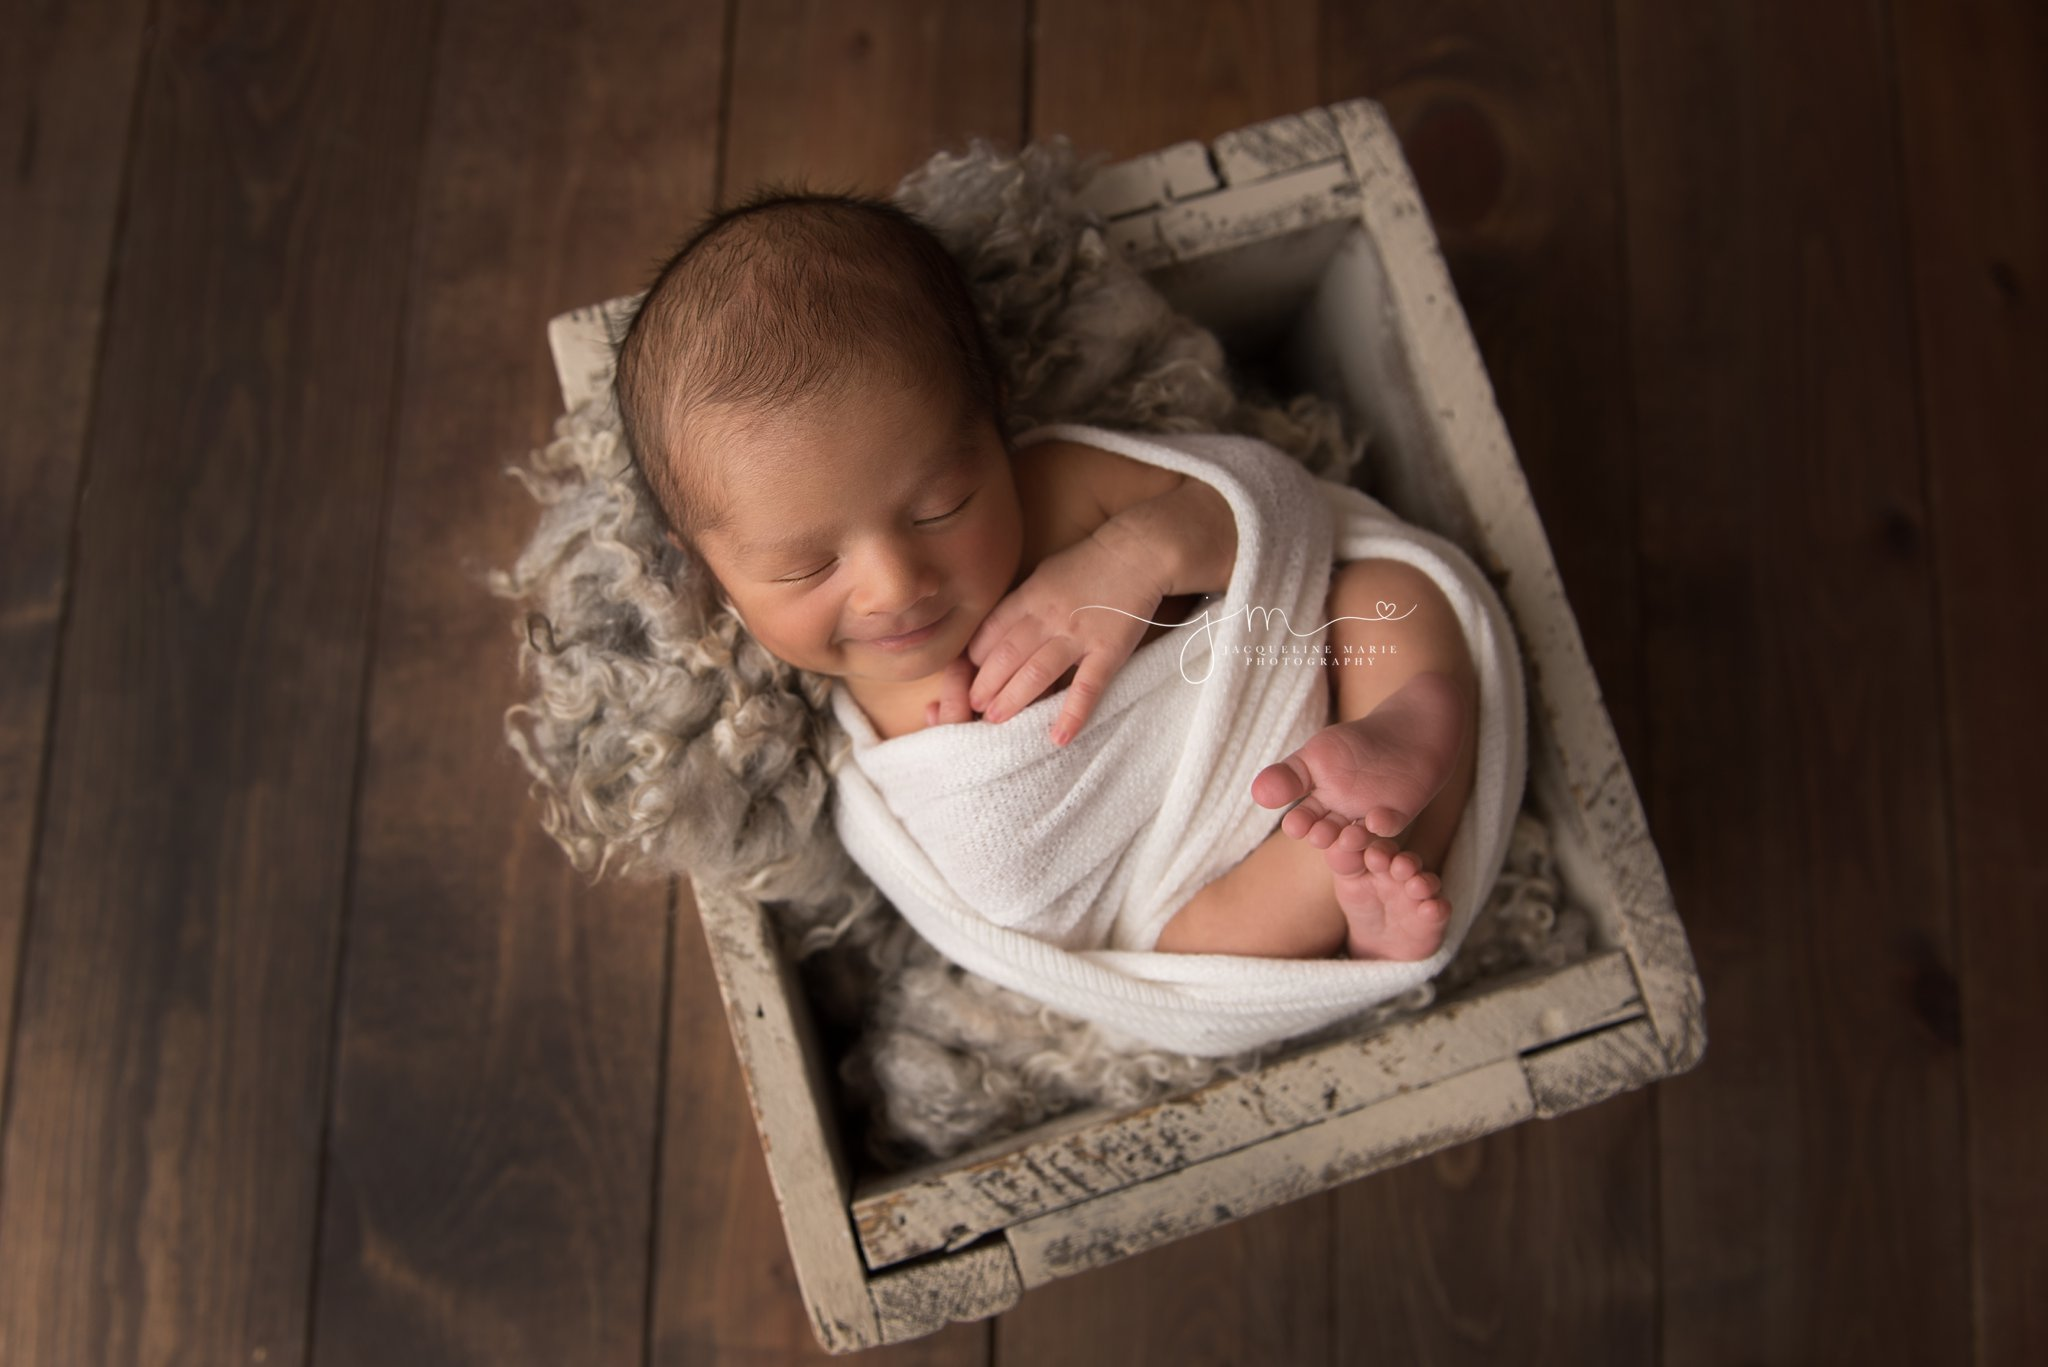 newborn baby boy smiles while swaddled in wood crate during newborn photography session in columbus ohio